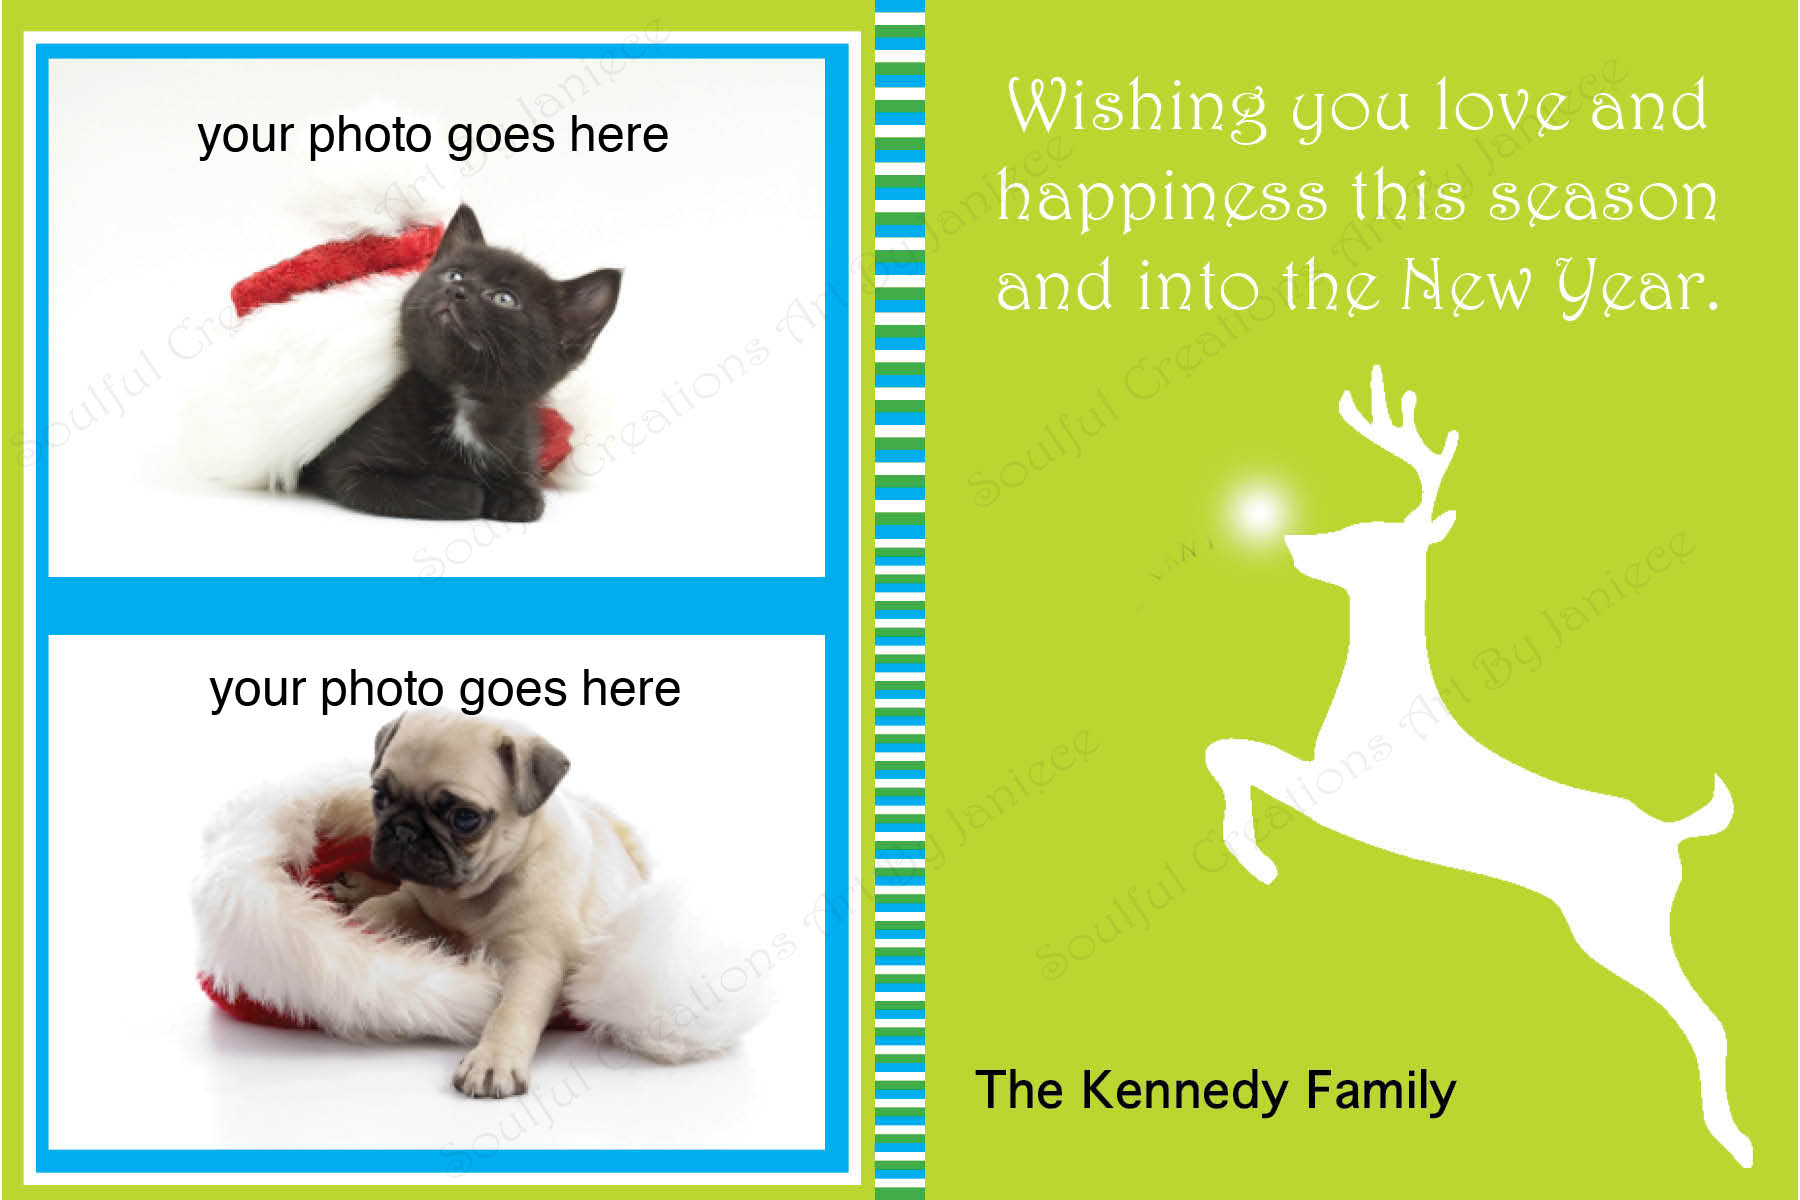 Christmas And Holiday Cards Personalized With Your Photo